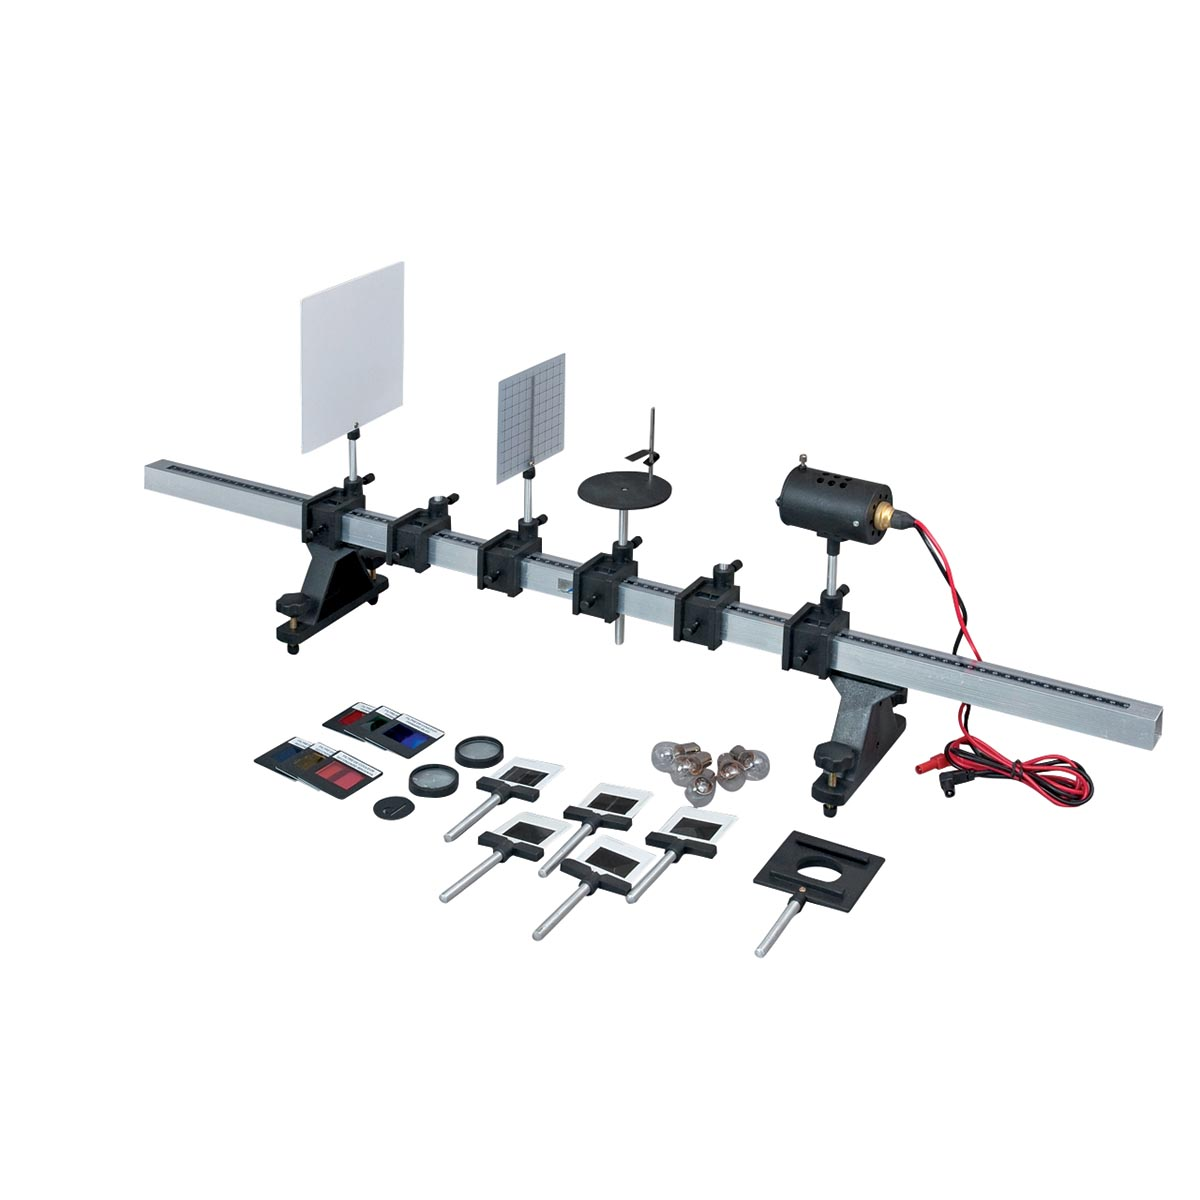 Optics Bench 28 Images Technical Manufacturing Corp 780 Series Cleantop 174 Optical Oriel